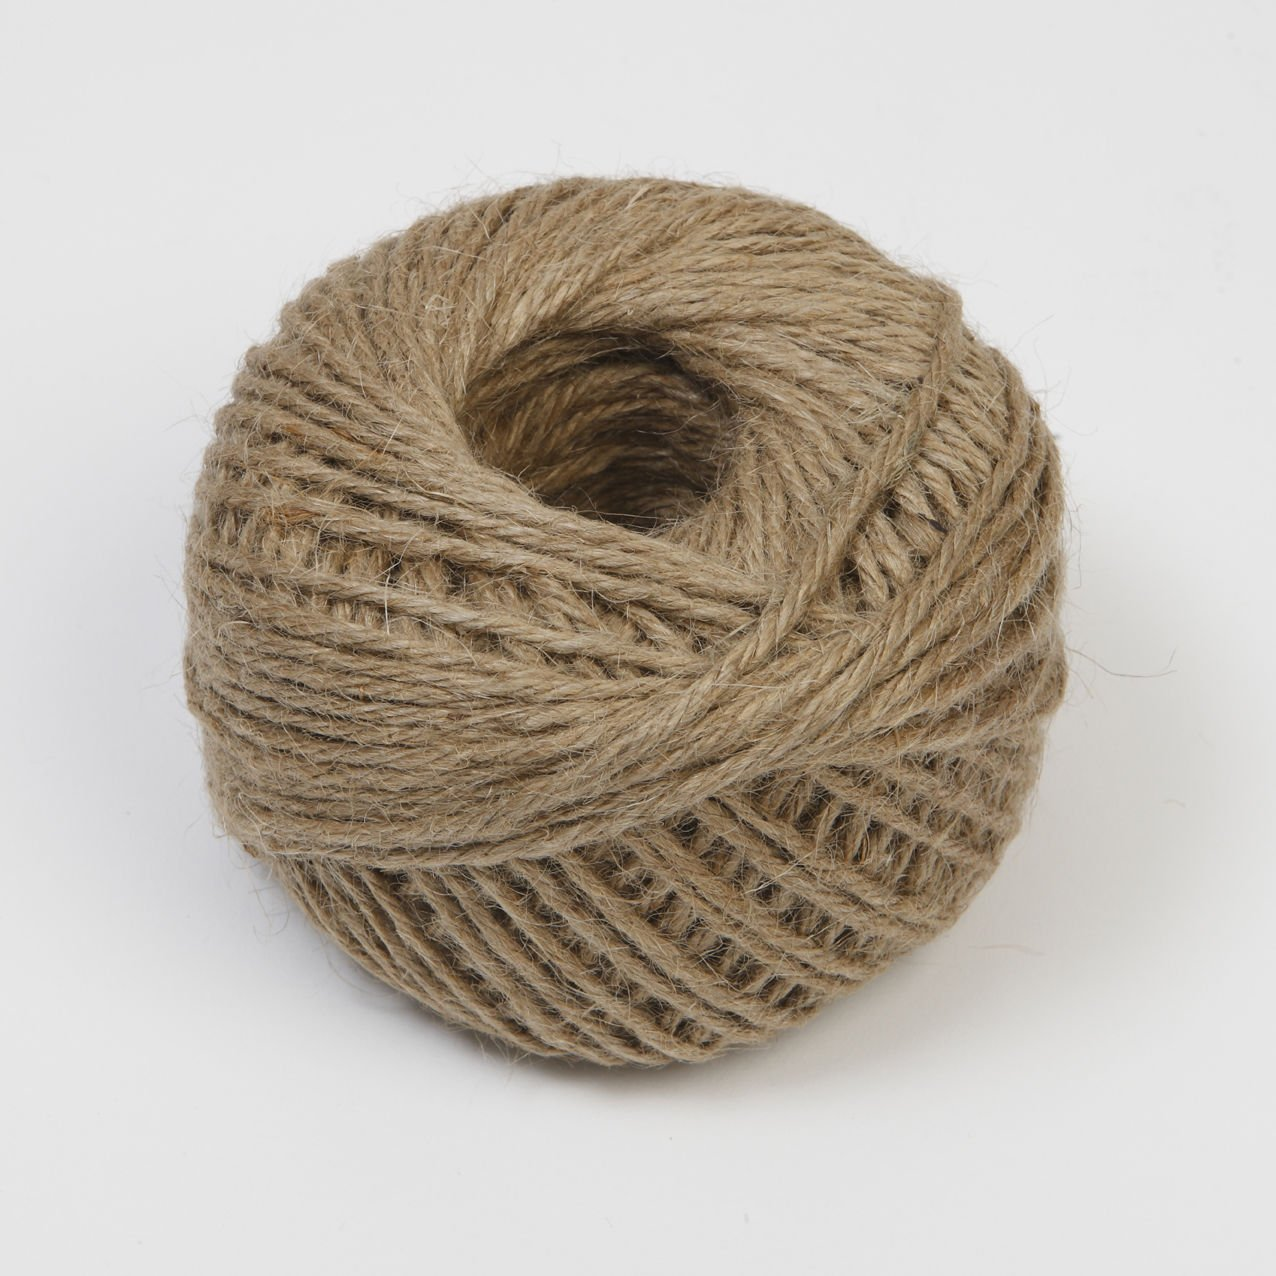 EXTRA THICK RUSTIC NATURAL JUTE BURLAP TWINE HESSIAN STRING SISAL SHABBY CHIC